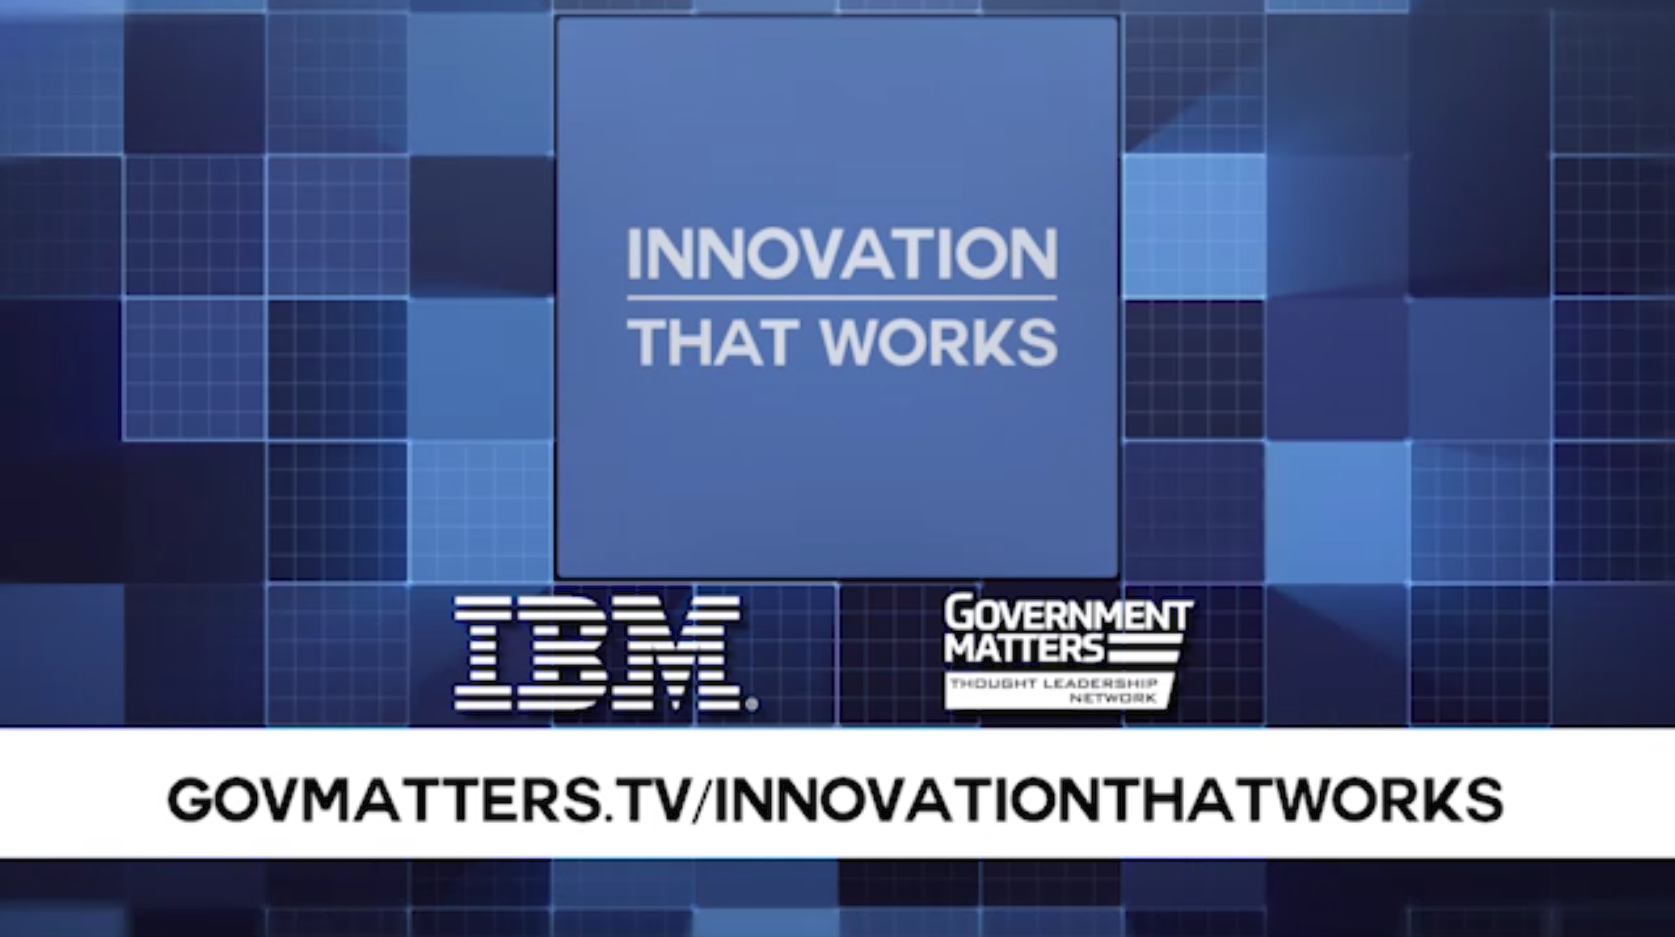 Innovation That Works